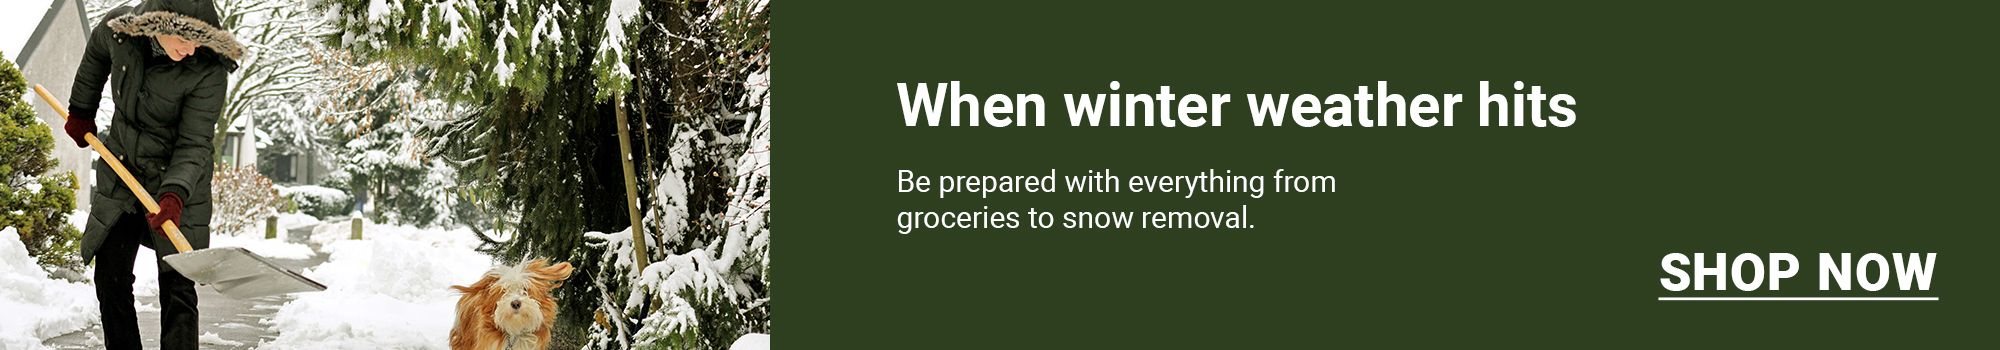 Snow stoppers. When winter weather hits, be prepared with everything you need for snow removal. Click here to shop now.